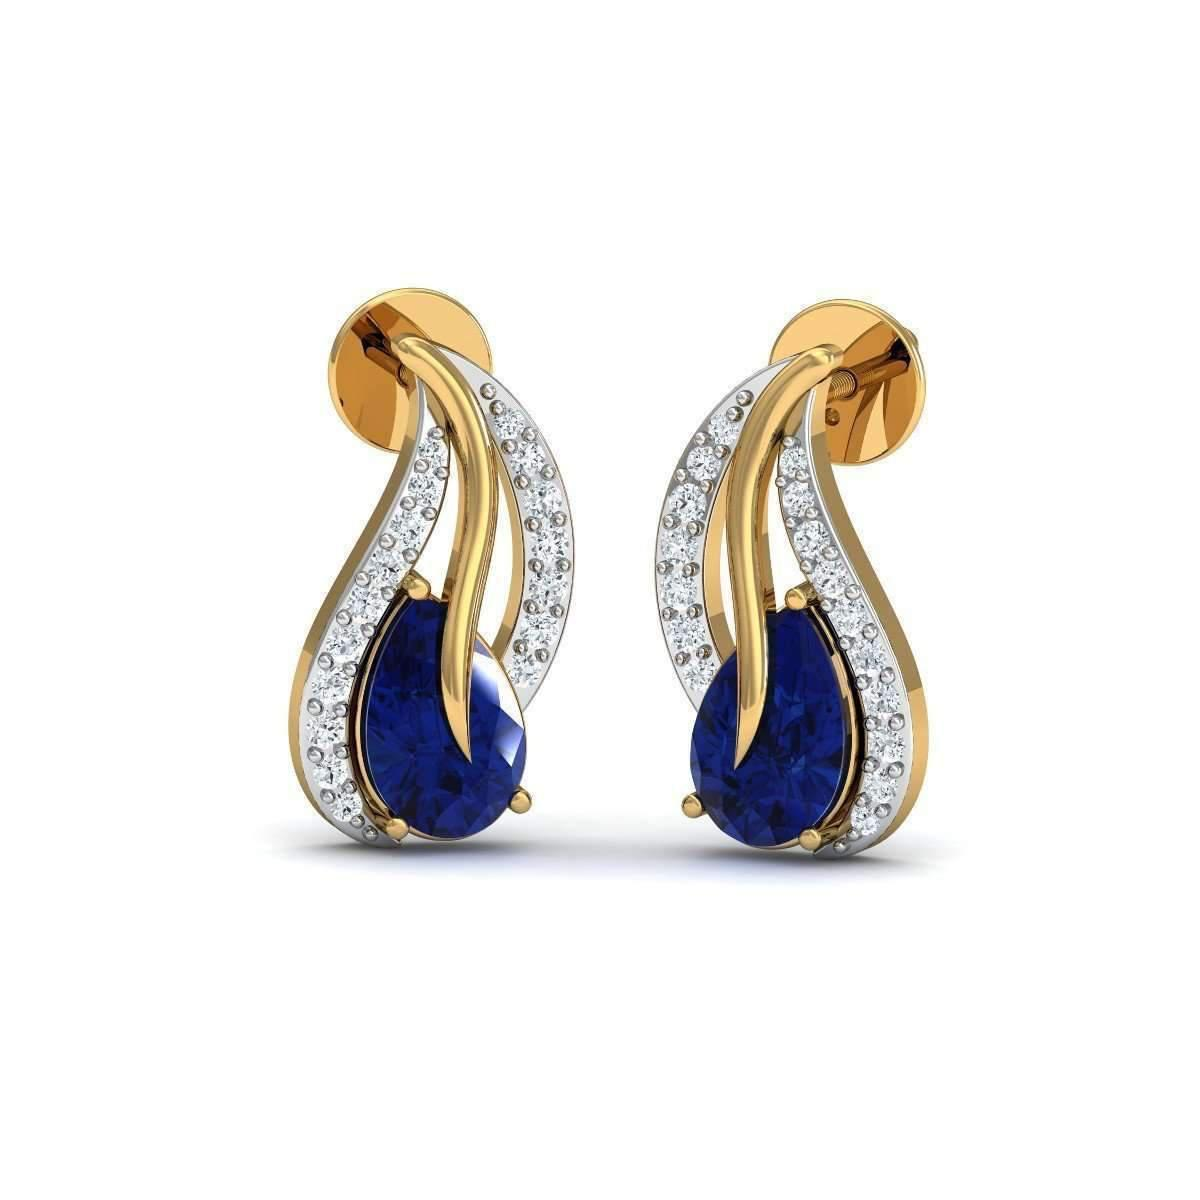 Diamoire Jewels Fillet Oval Blue Sapphire And Diamond Studs in 18kt Gold xIRJT3eH5D